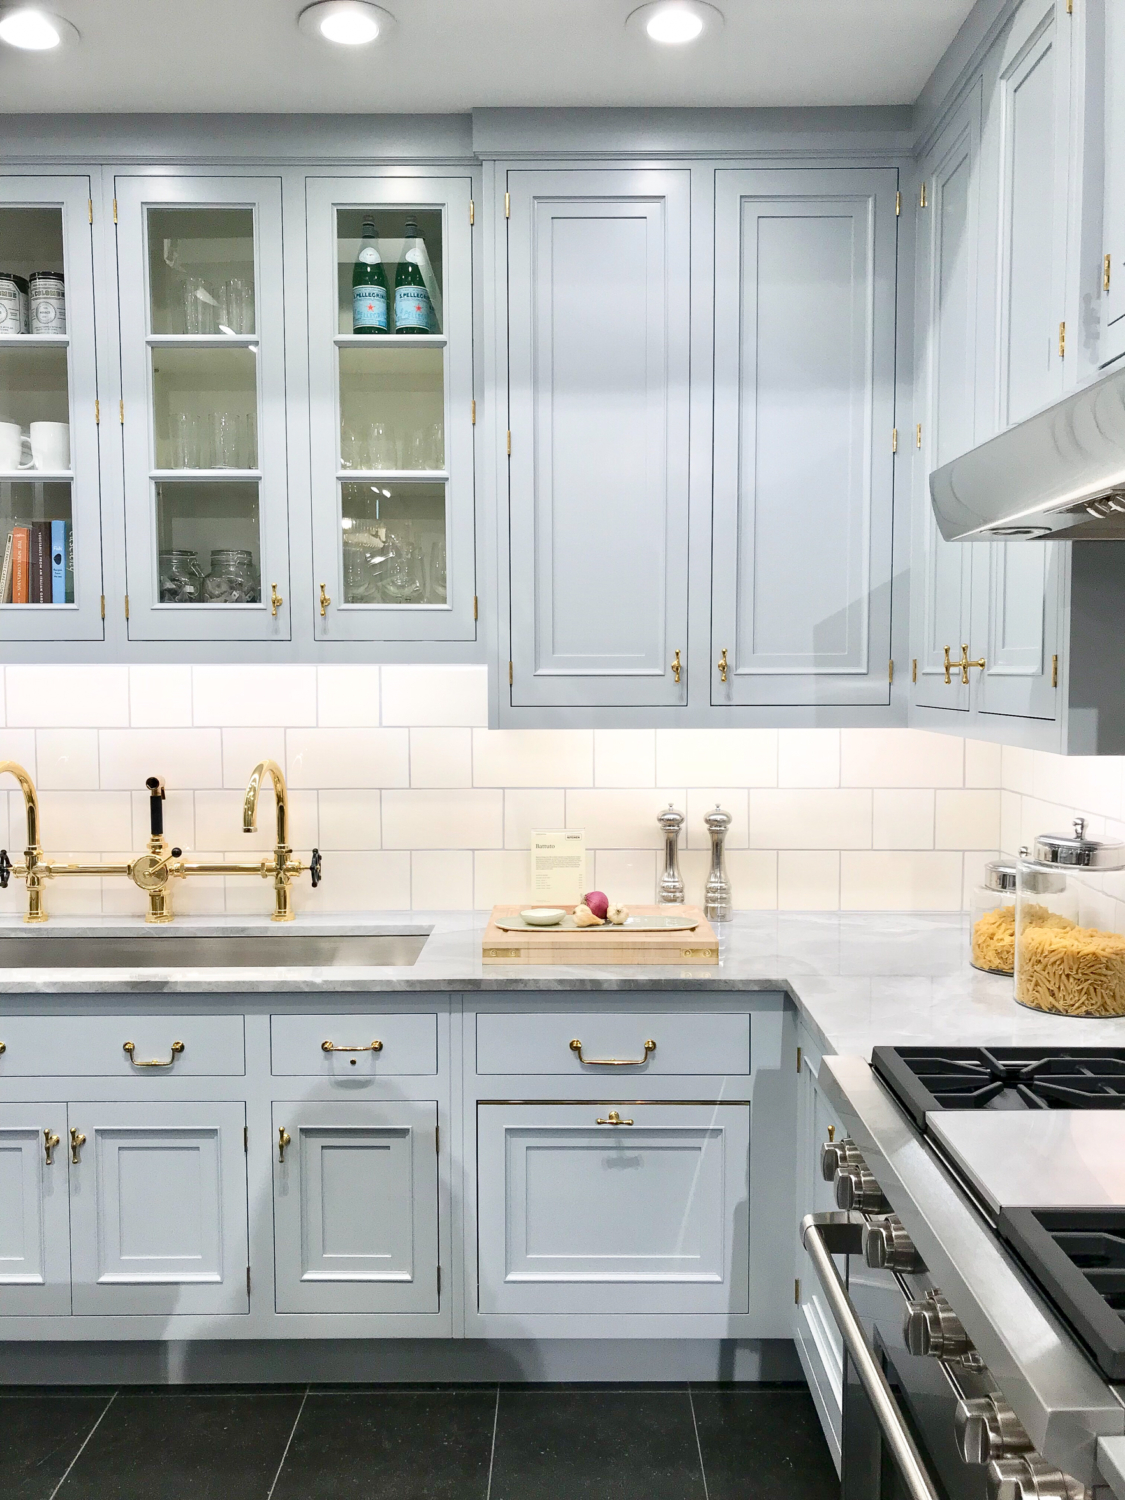 Grey kitchen cabinets with polished brass hardware